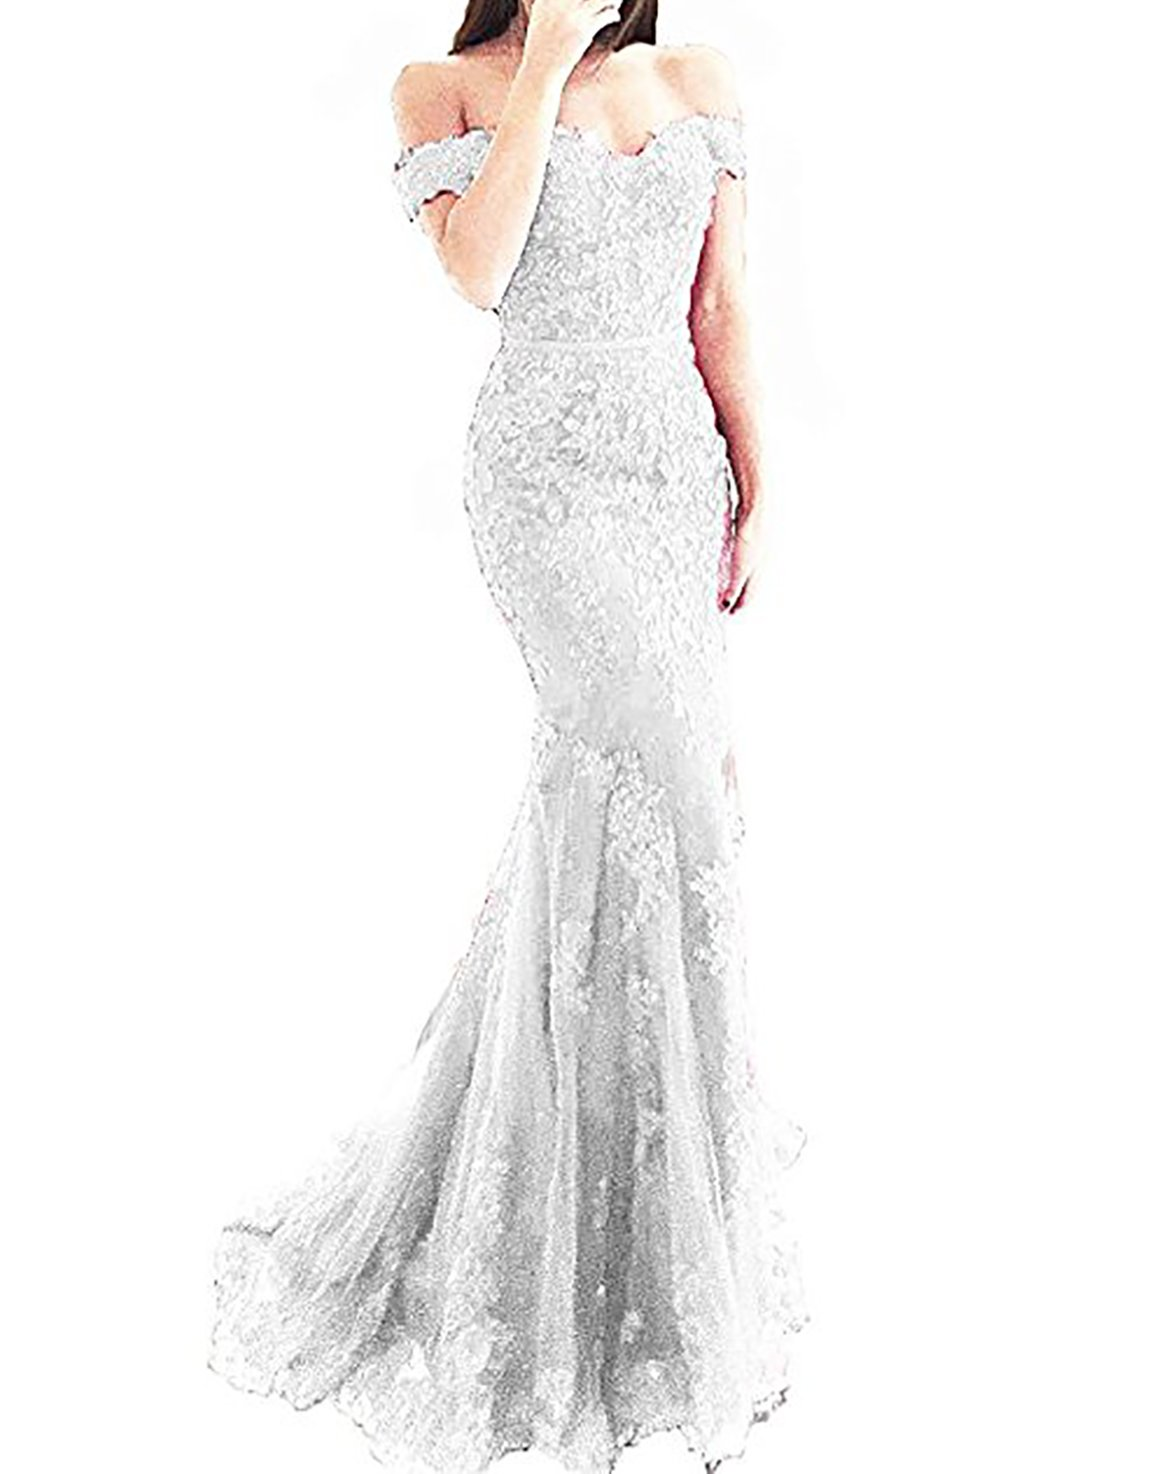 fdd90473088 Scarisee Women s Mermaid Trumpet Beaded Off Shoulder Prom Evening Dresses  Lace Appliqued Formal Party Gowns White 02